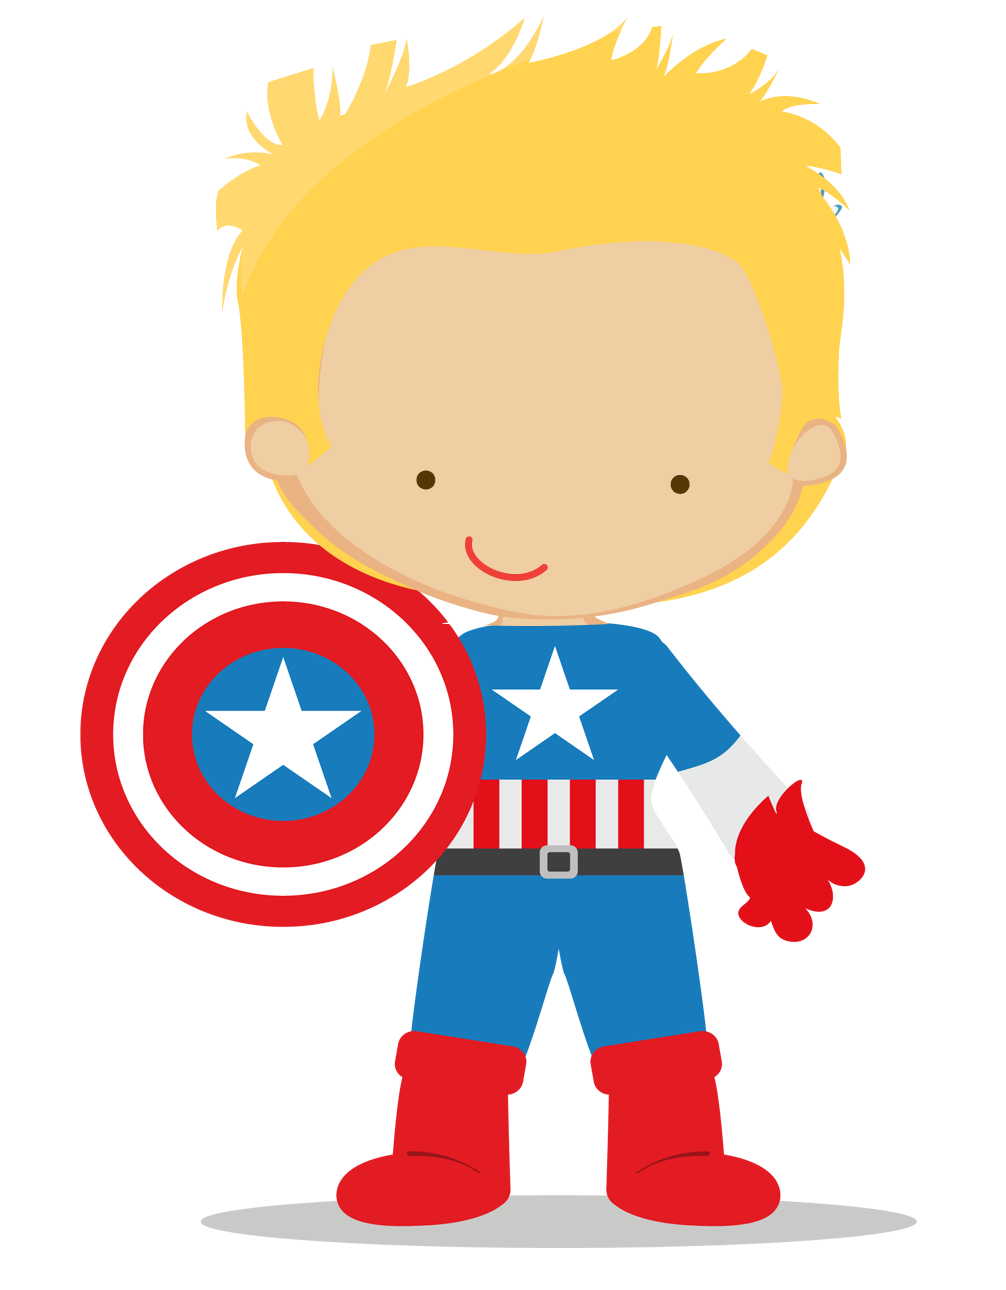 Superhero thanksgiving clipart vector free library Aquaman Clipart at GetDrawings.com   Free for personal use Aquaman ... vector free library